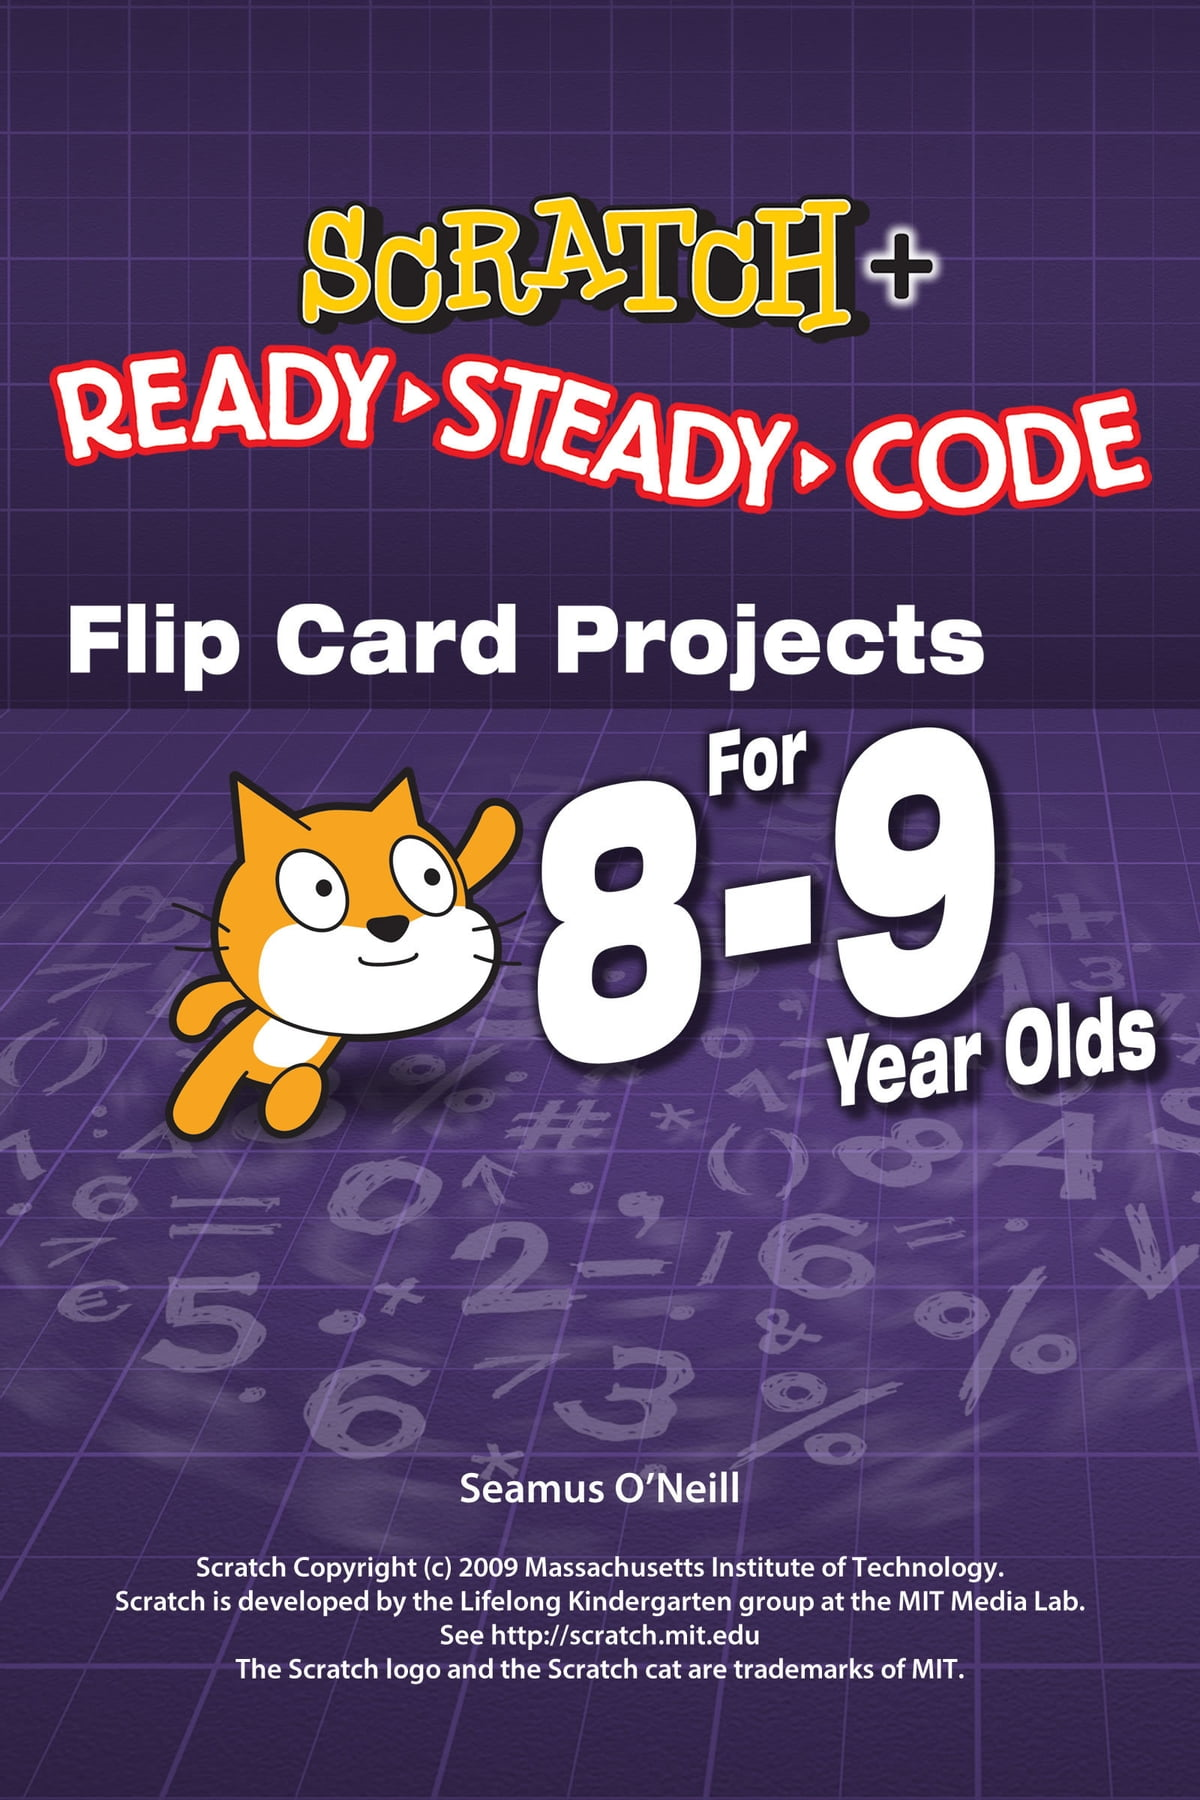 Scratch Projects For 8 9 Year Olds Scratch Short And Easy With